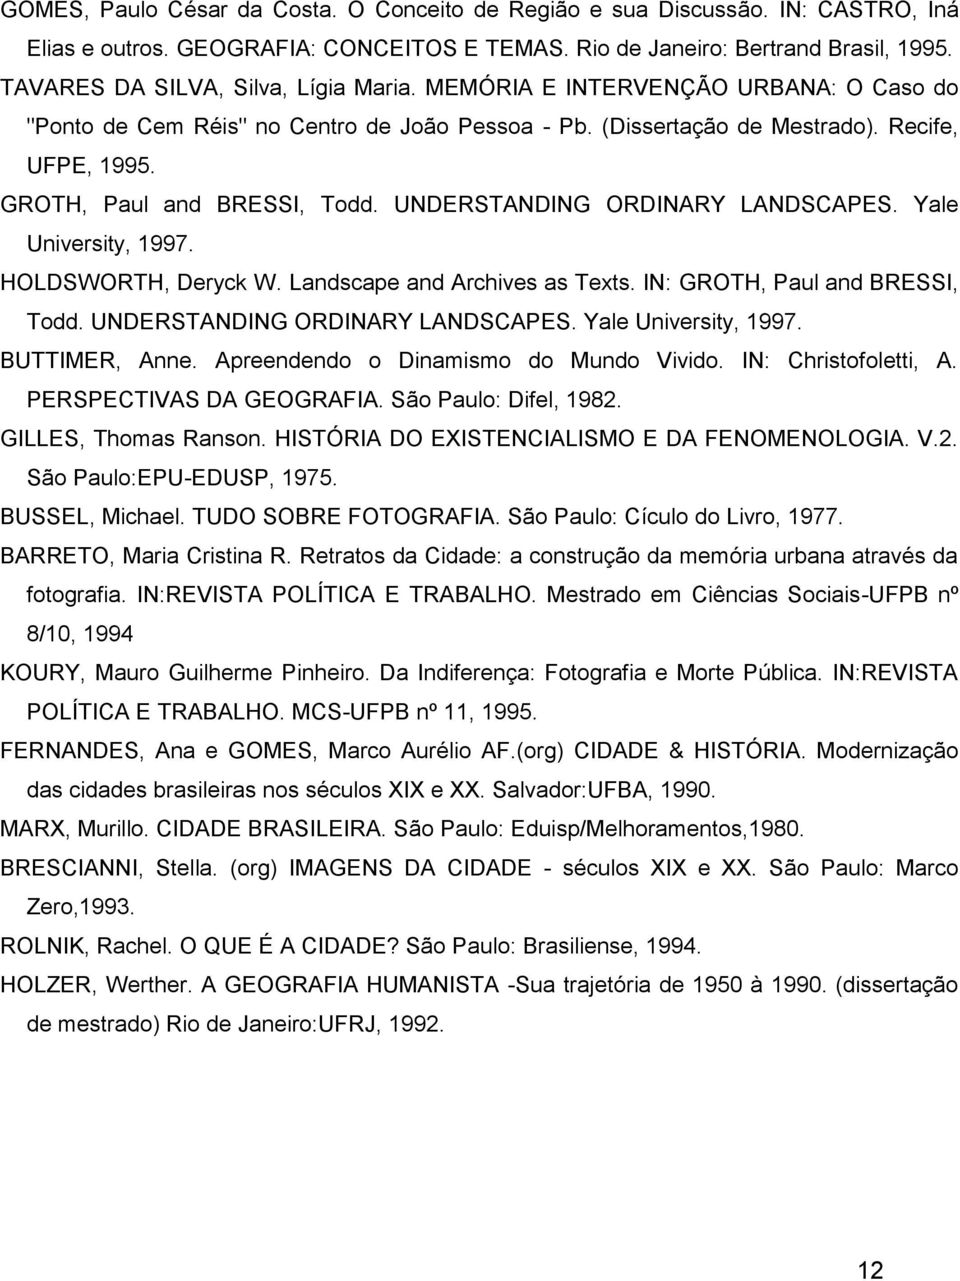 GROTH, Paul and BRESSI, Todd. UNDERSTANDING ORDINARY LANDSCAPES. Yale University, 1997. HOLDSWORTH, Deryck W. Landscape and Archives as Texts. IN: GROTH, Paul and BRESSI, Todd.